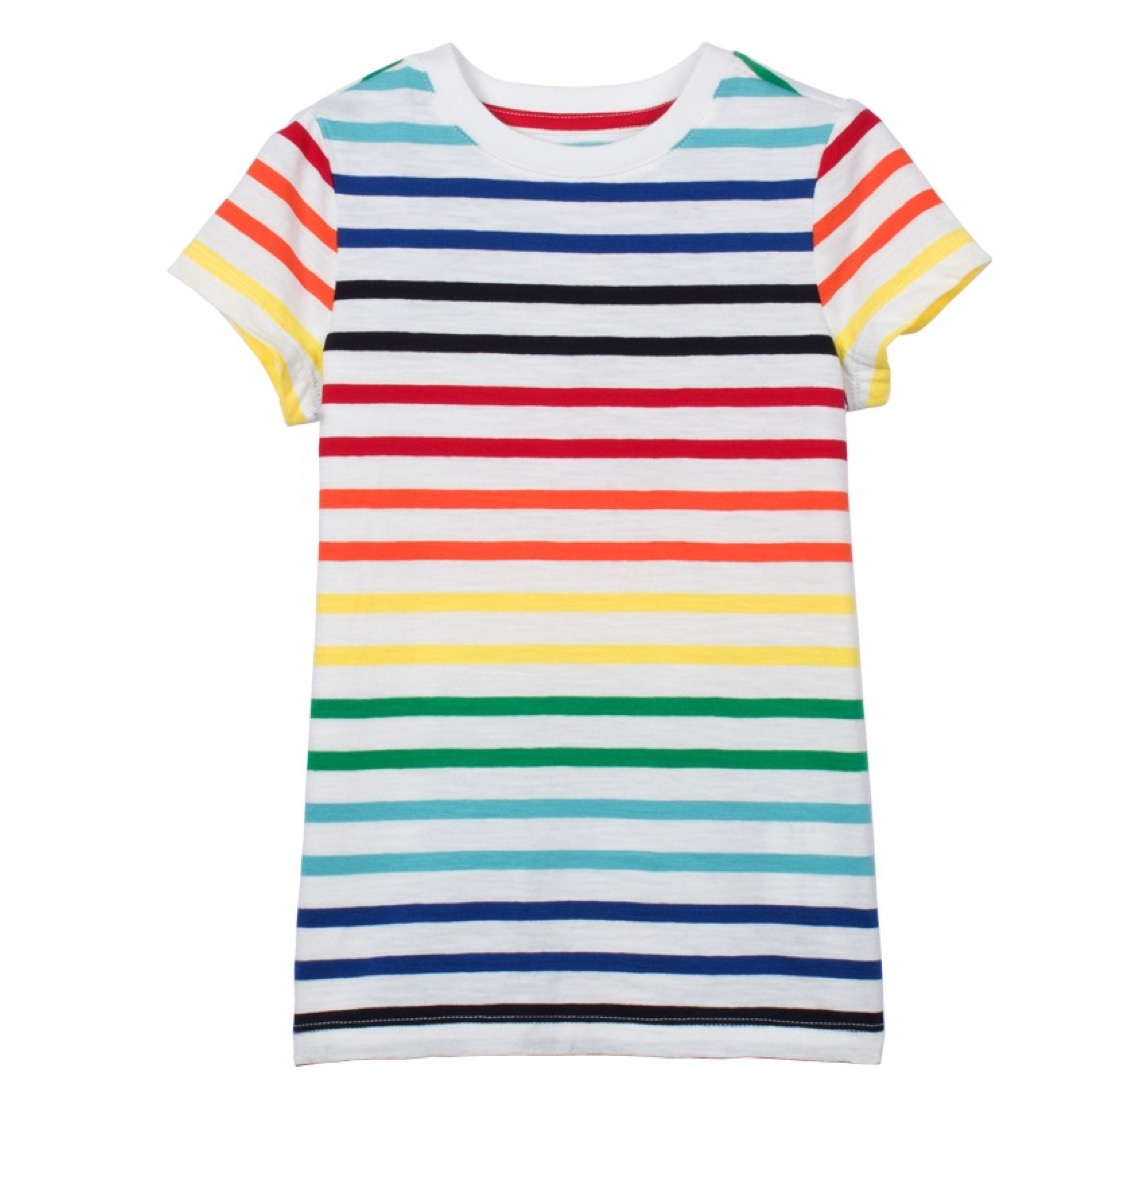 Primary Striped Tee {Save Money on Kids' Clothes}